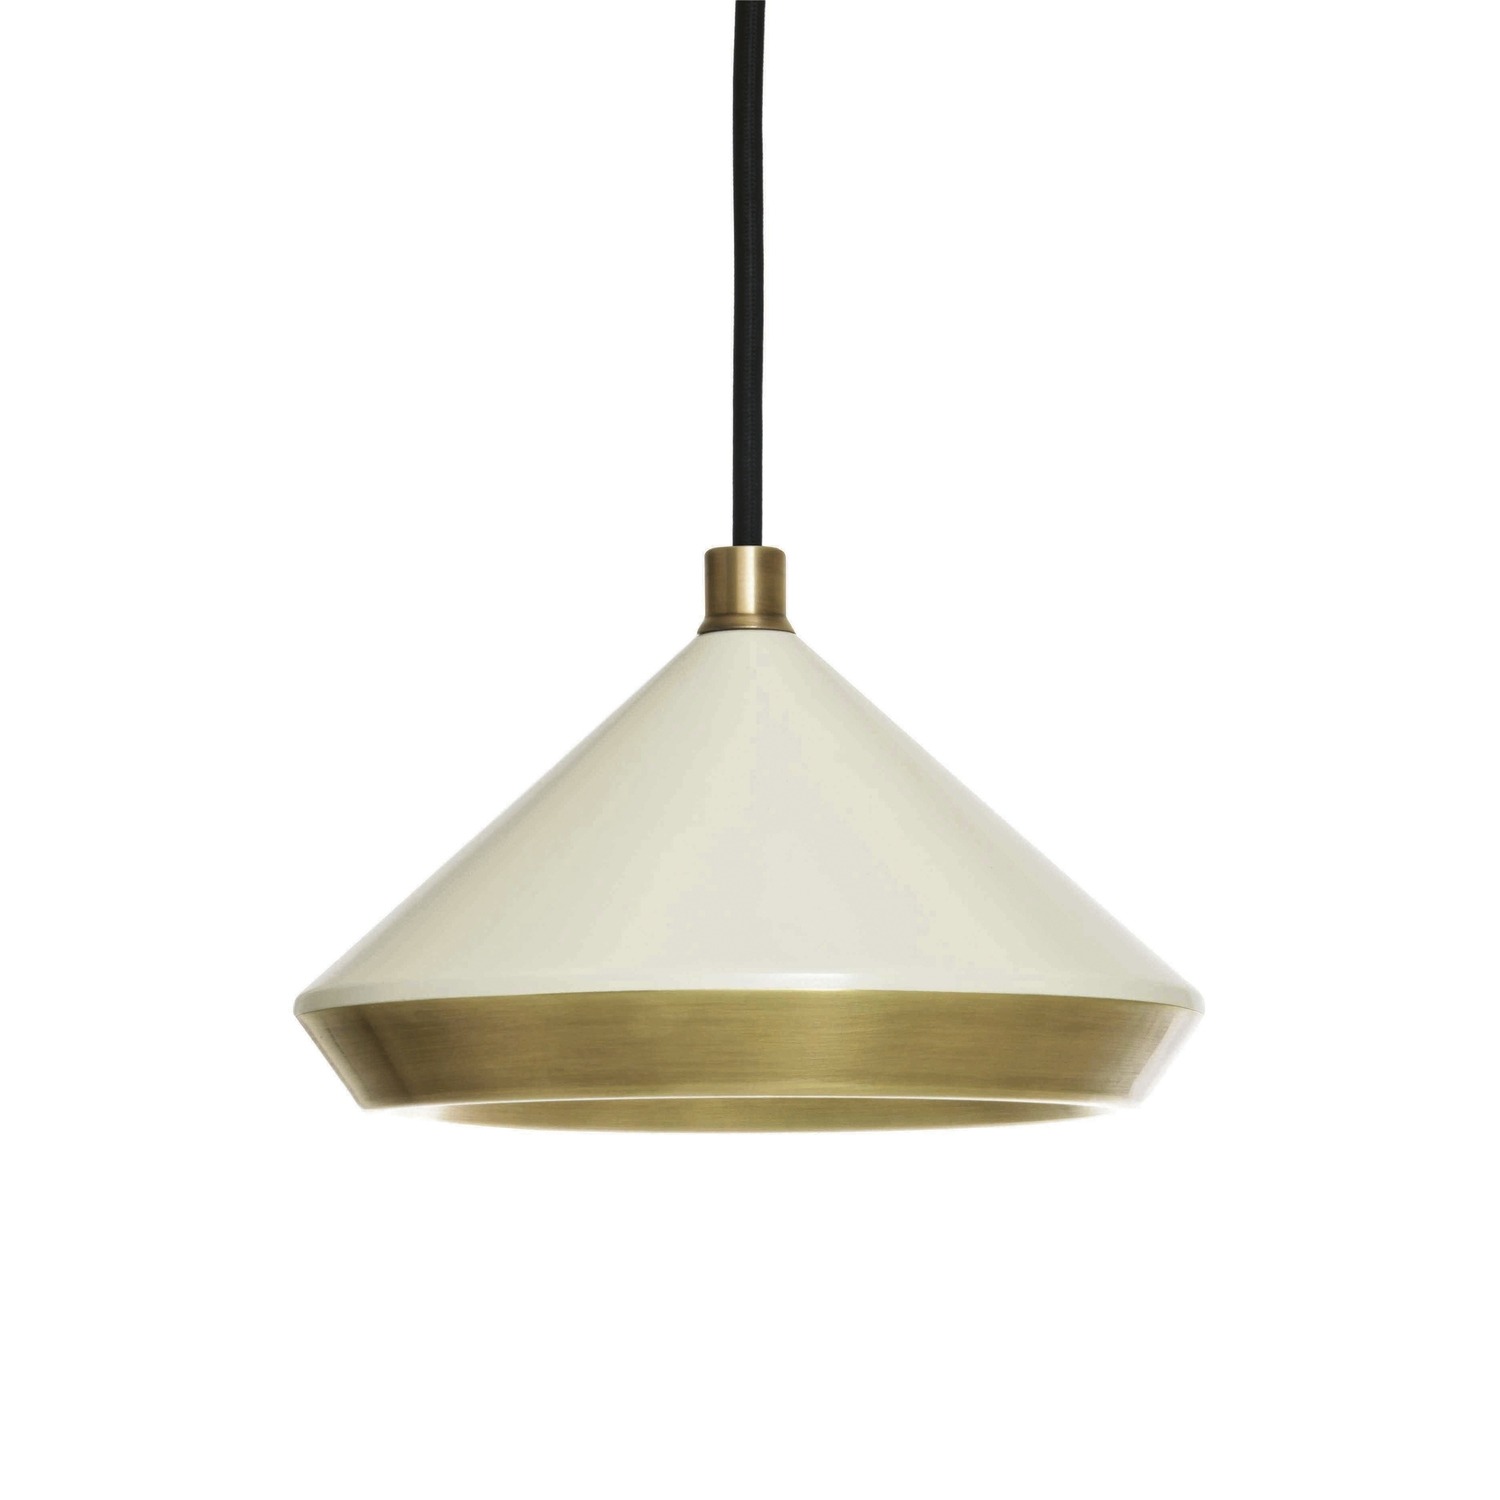 en by nyta brass pendant from product architonic lighting lamp general b tilt